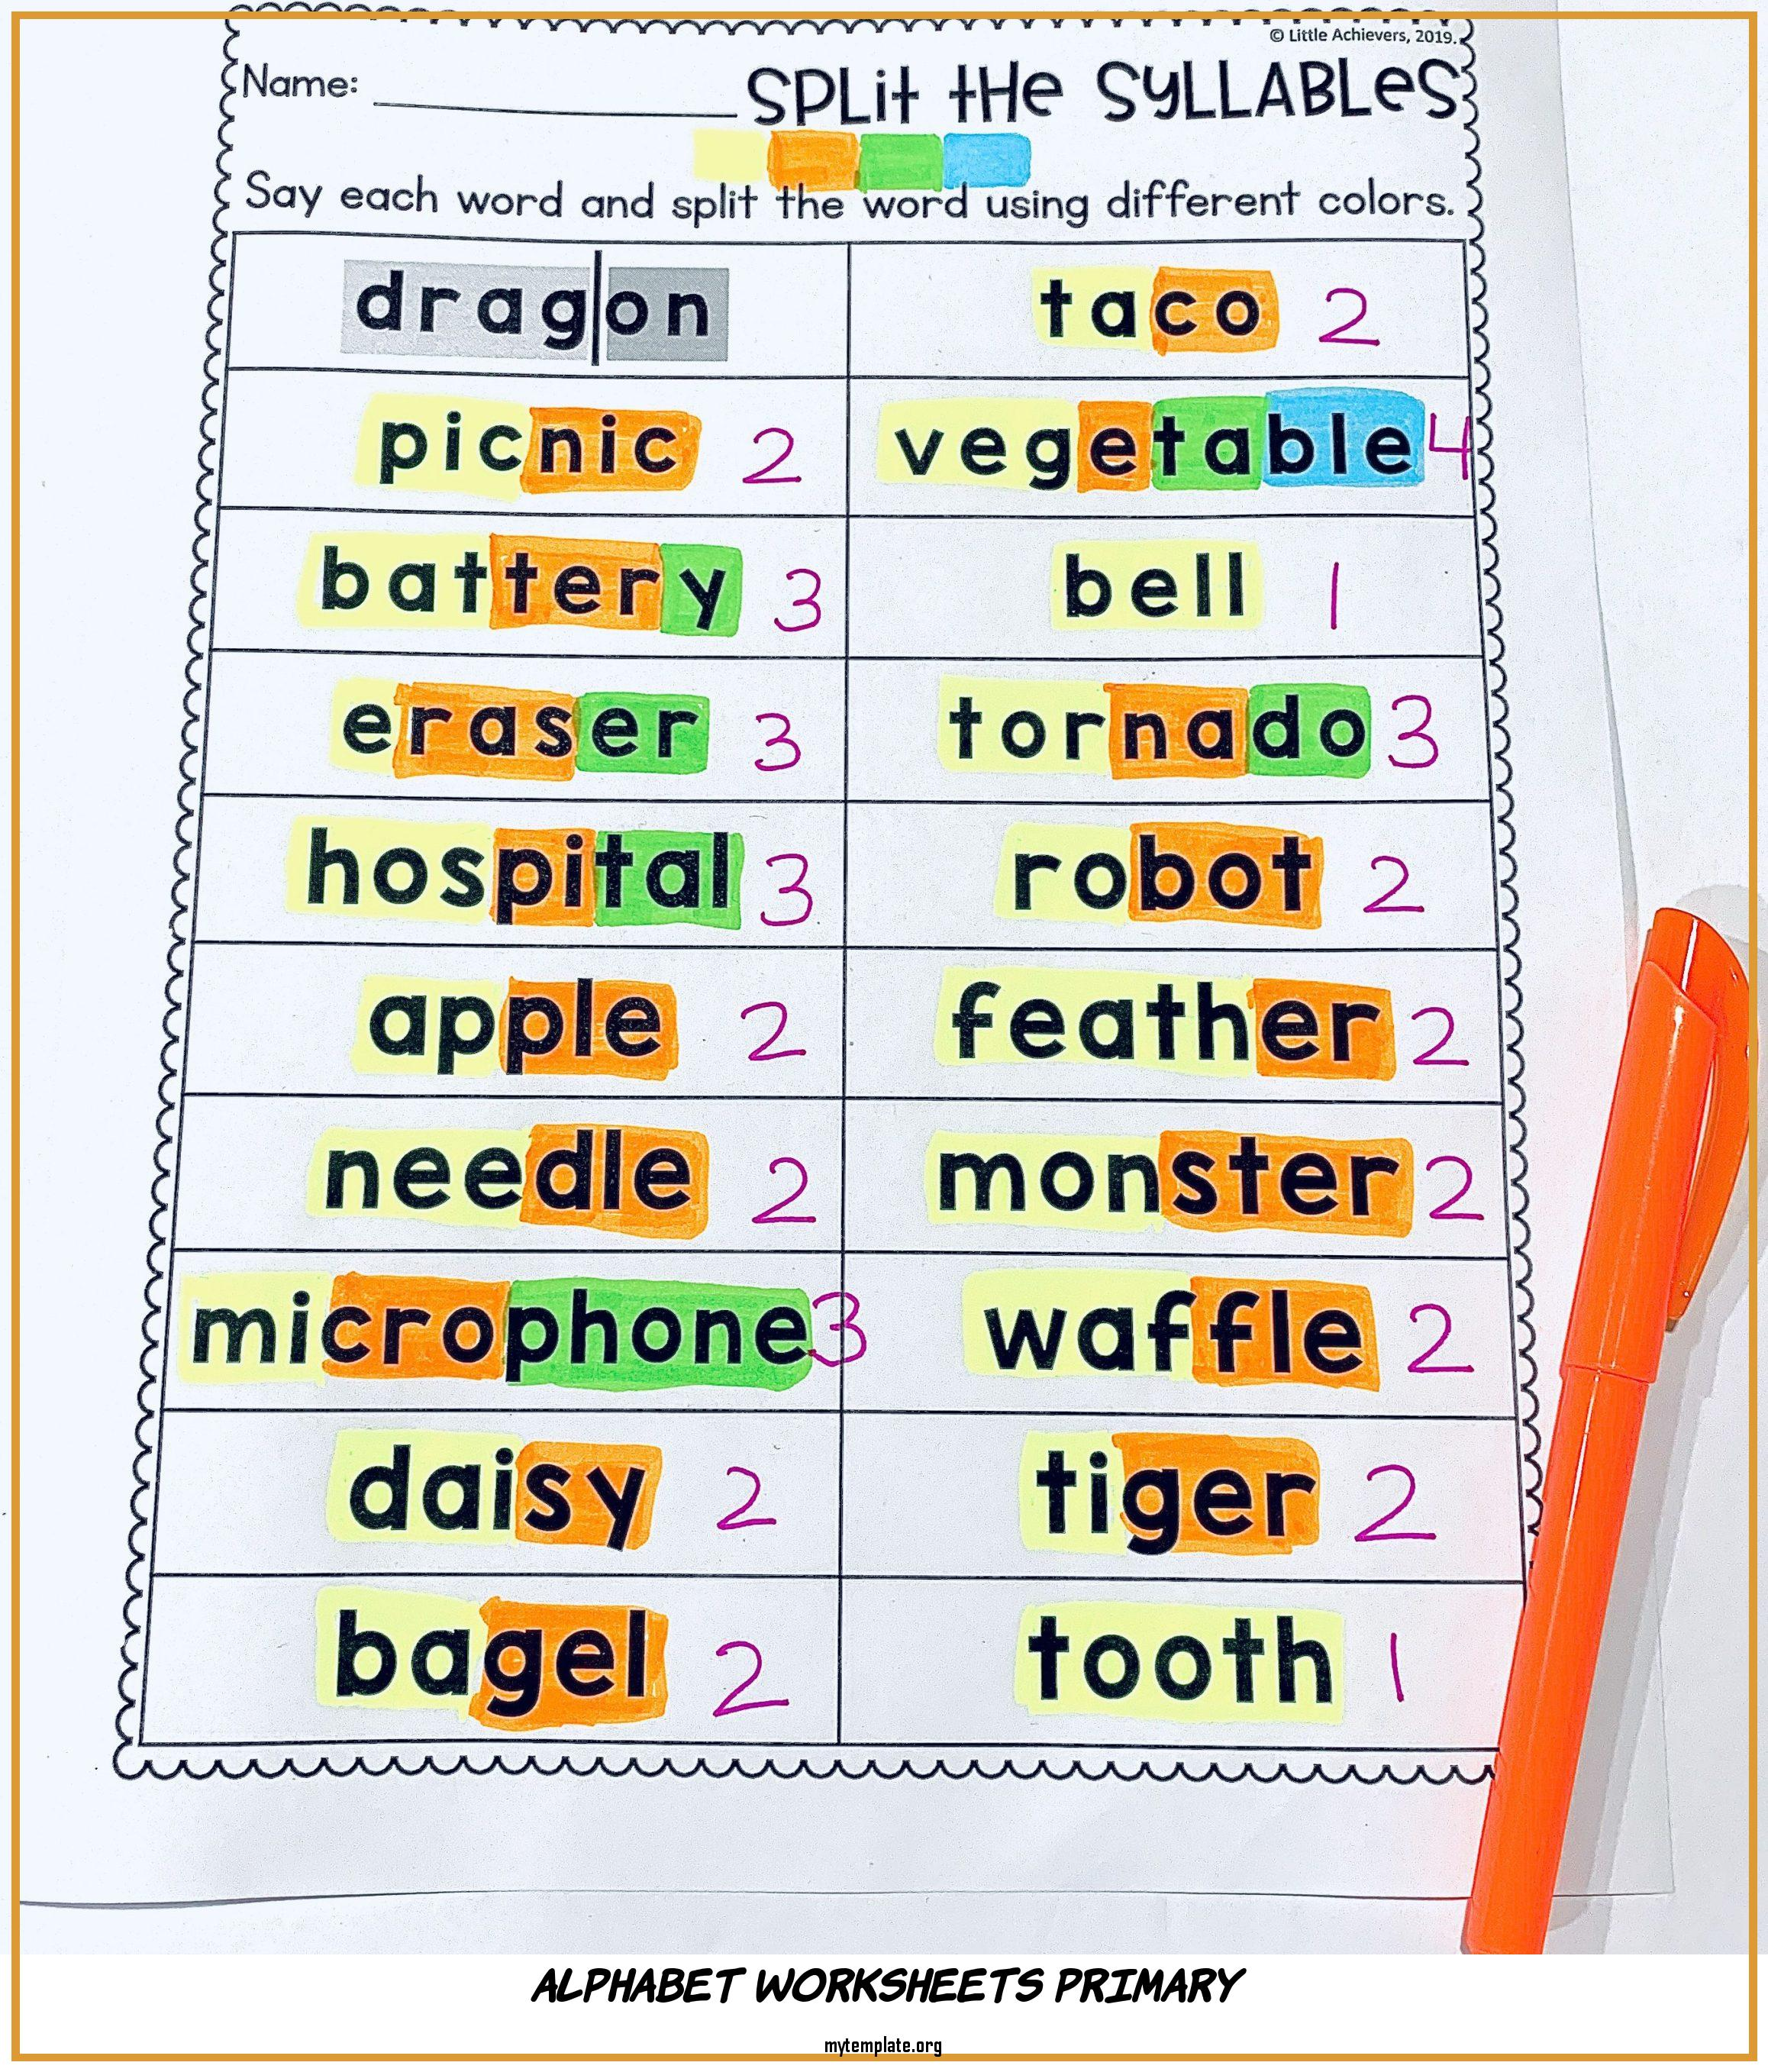 Alphabet Worksheets Primary Of Syllable Matching